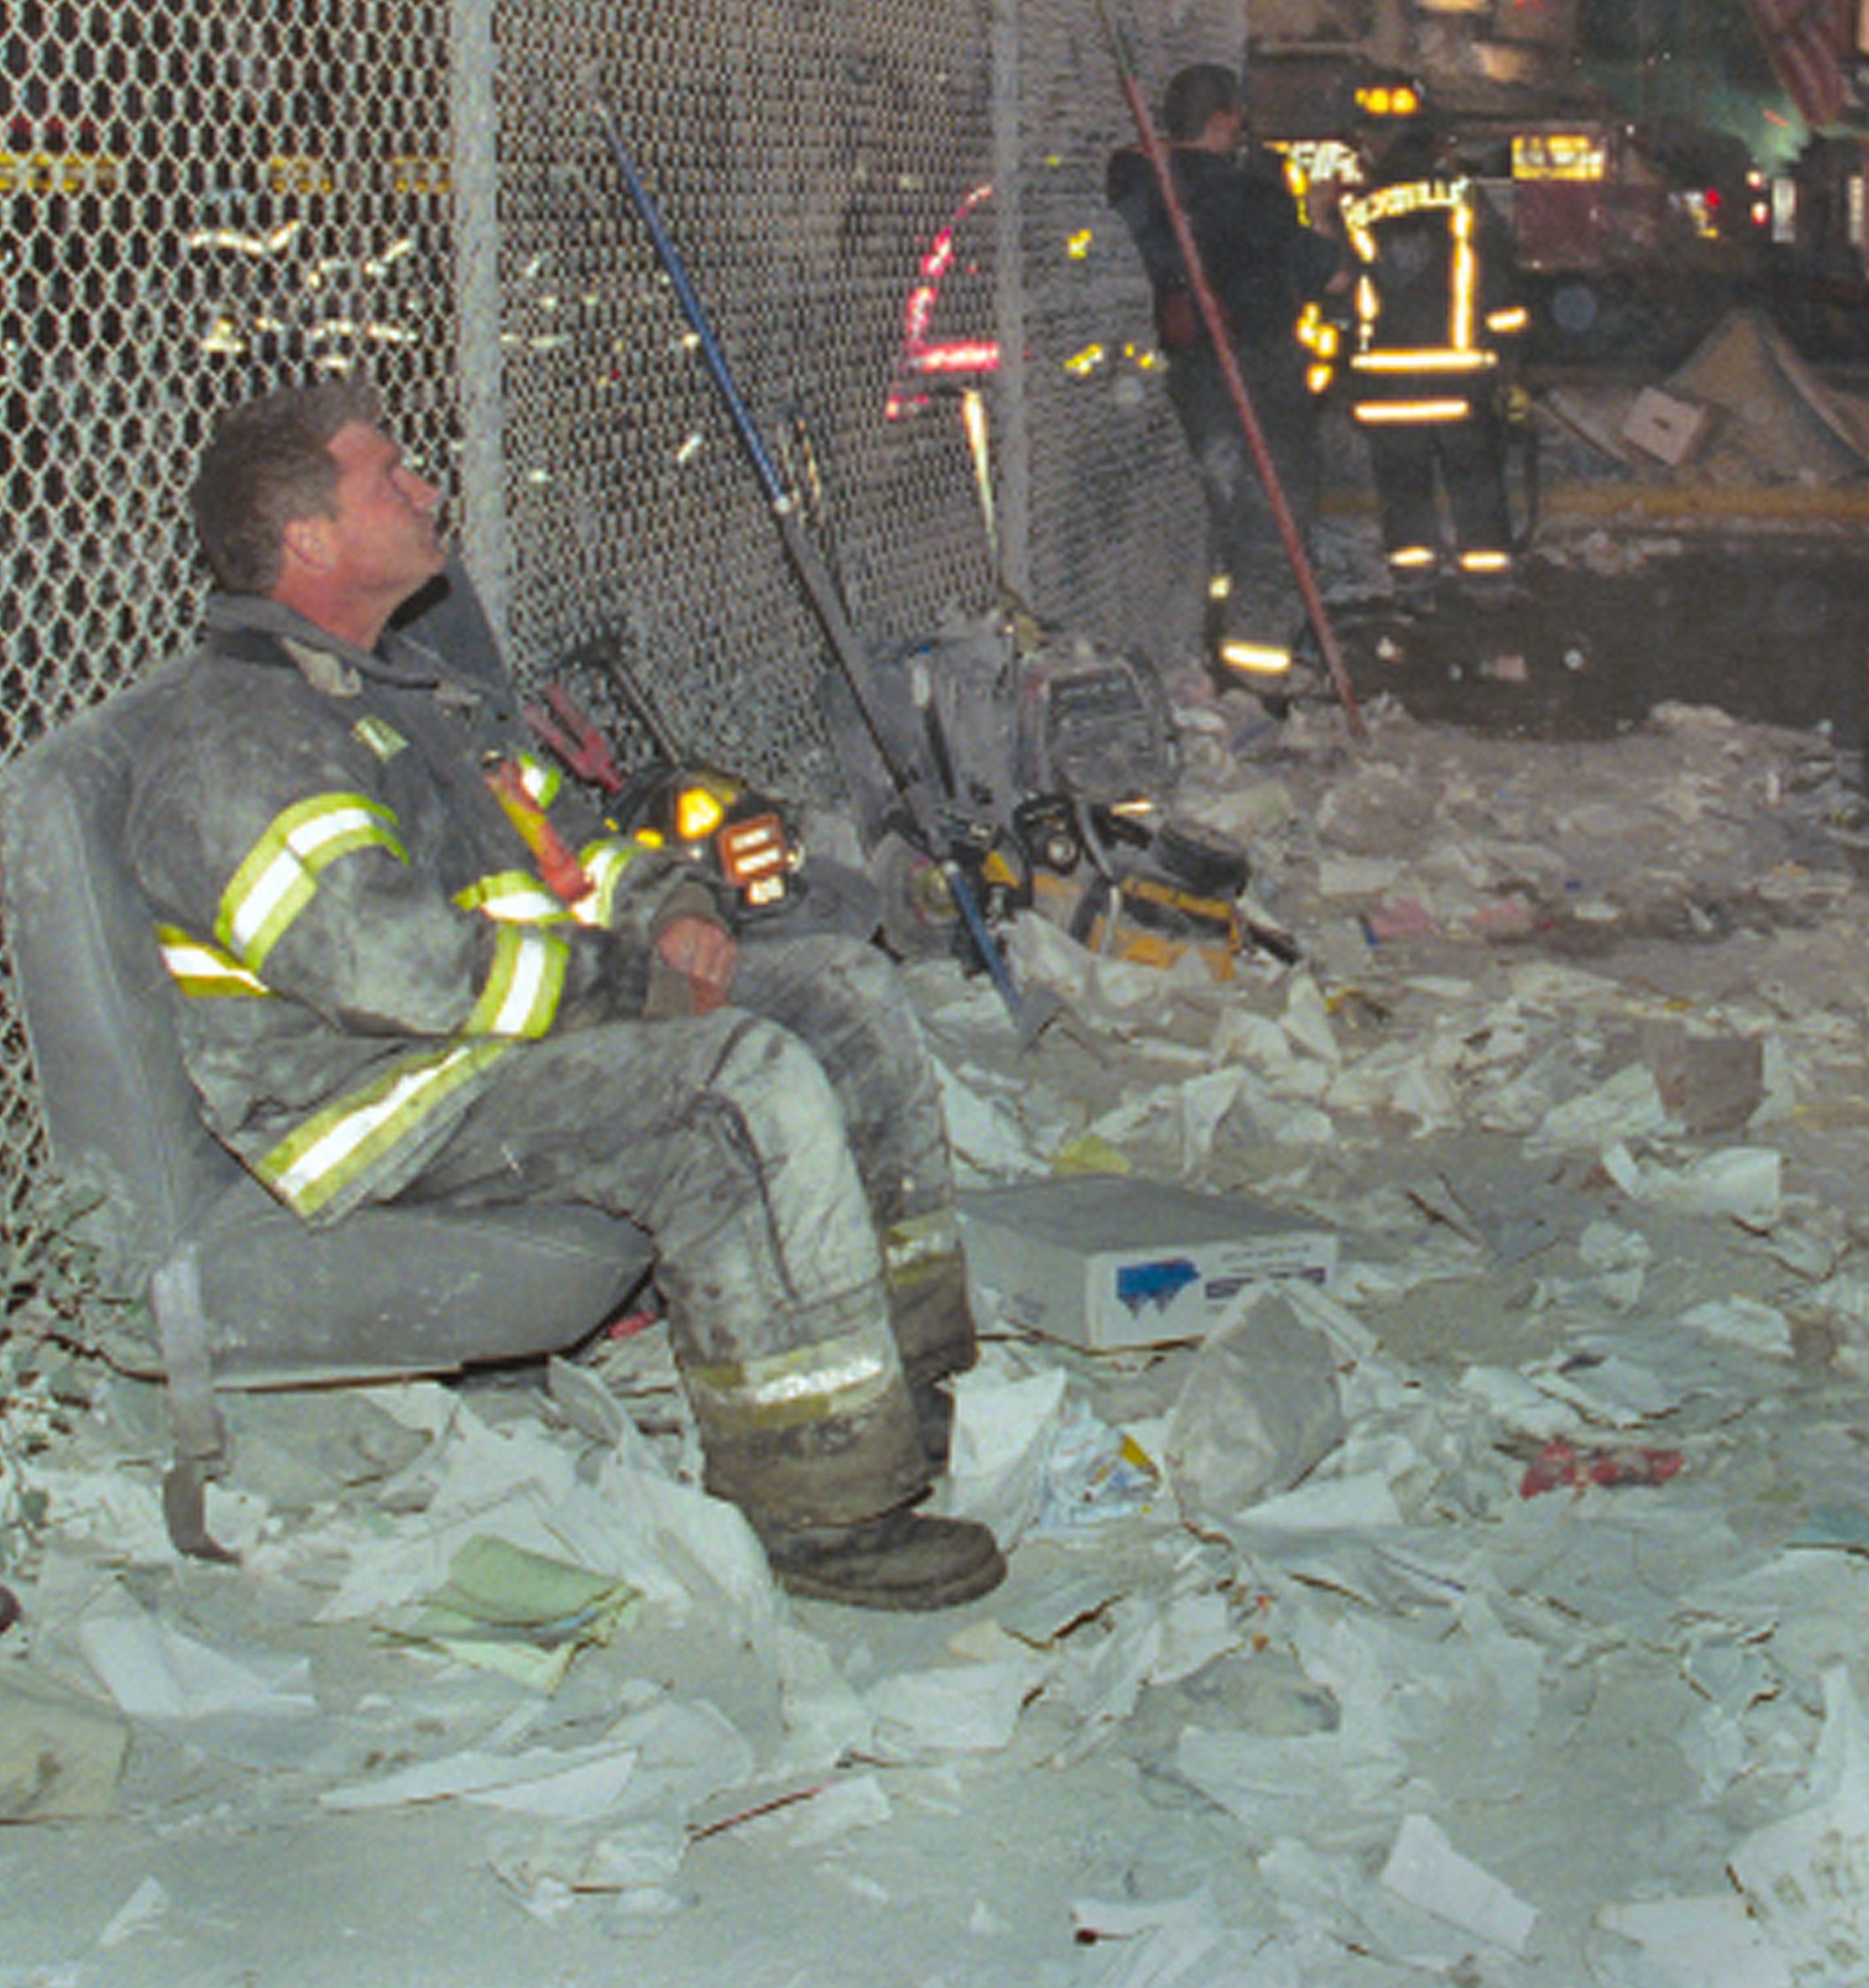 September 11, 2001: Ground Zero